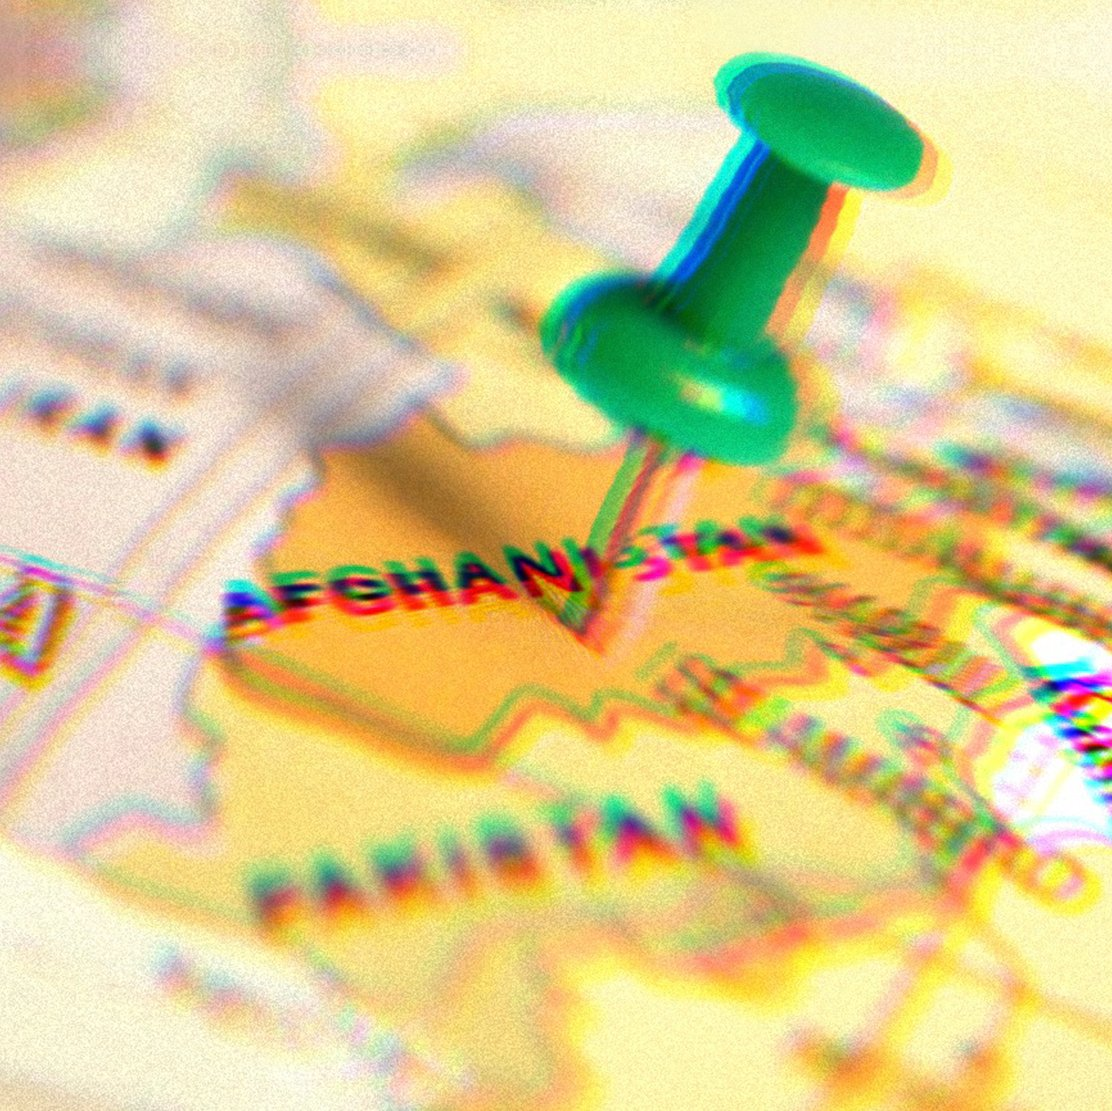 Green pushpin pressed into a map, the pin is sticking into Afghanistan.